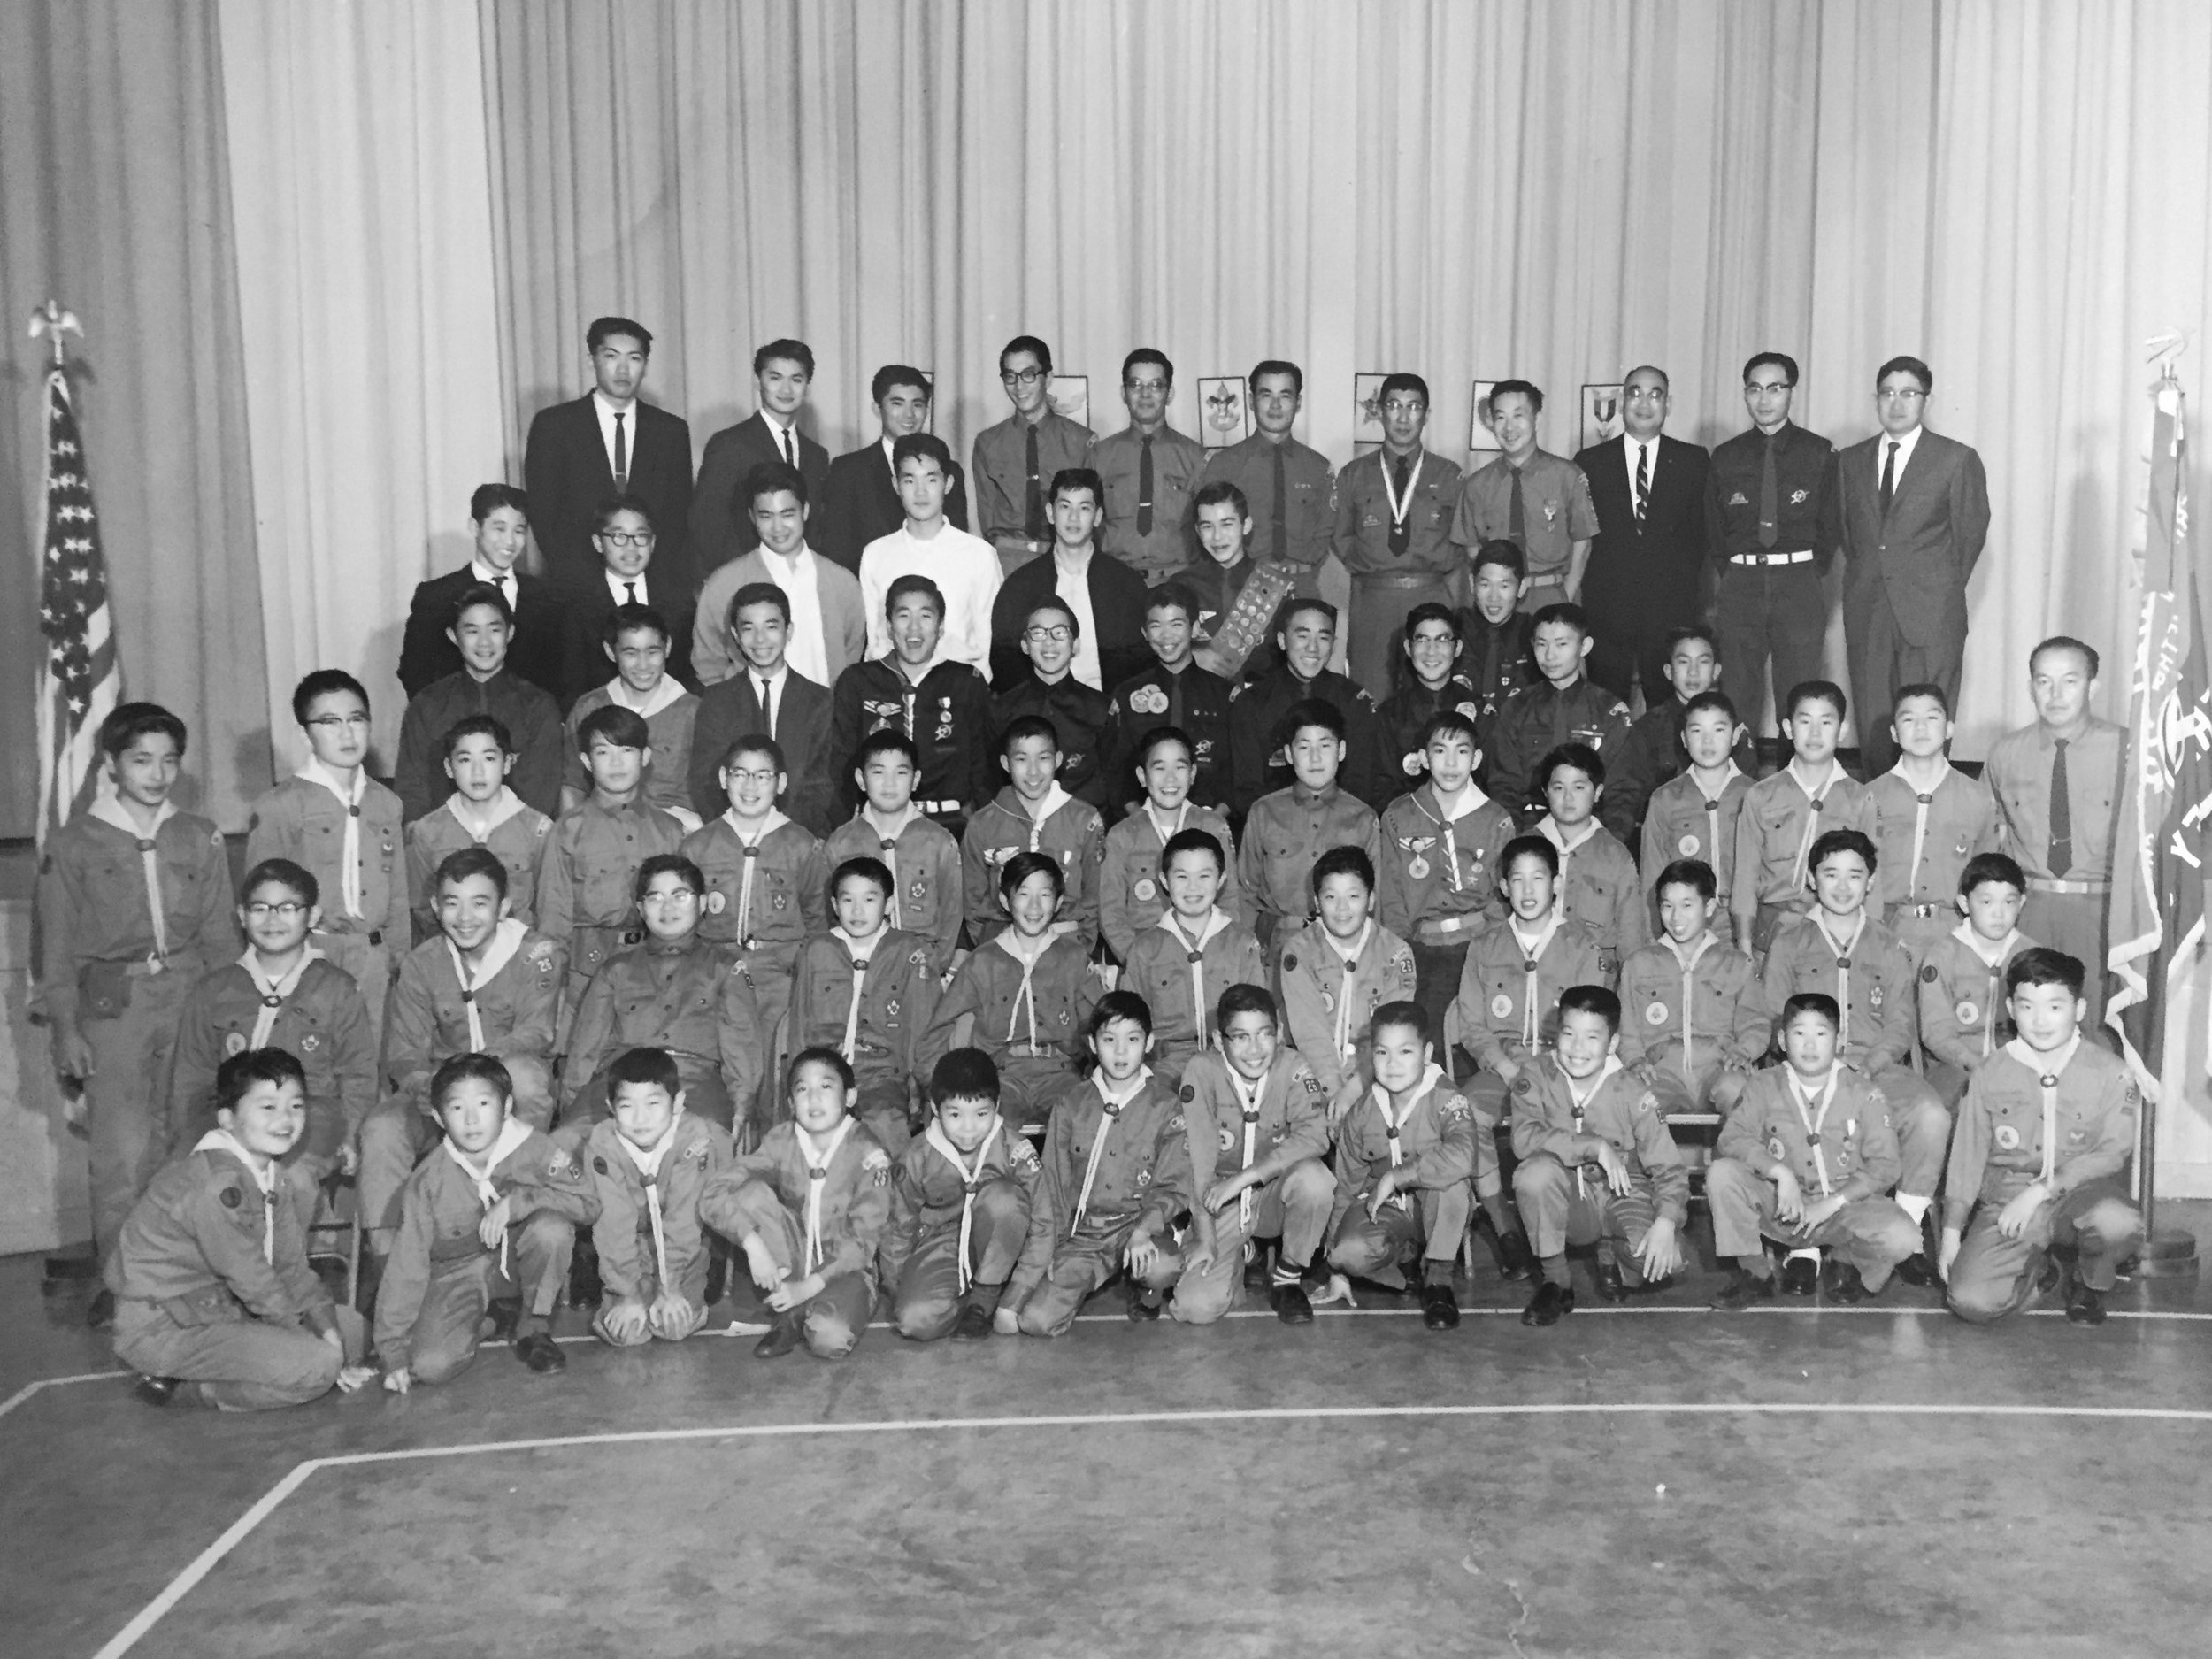 Jordan began his Berkeley Boy Scout troop when he was 26 and led it for 37 years. He is in the top row, fifth from right.